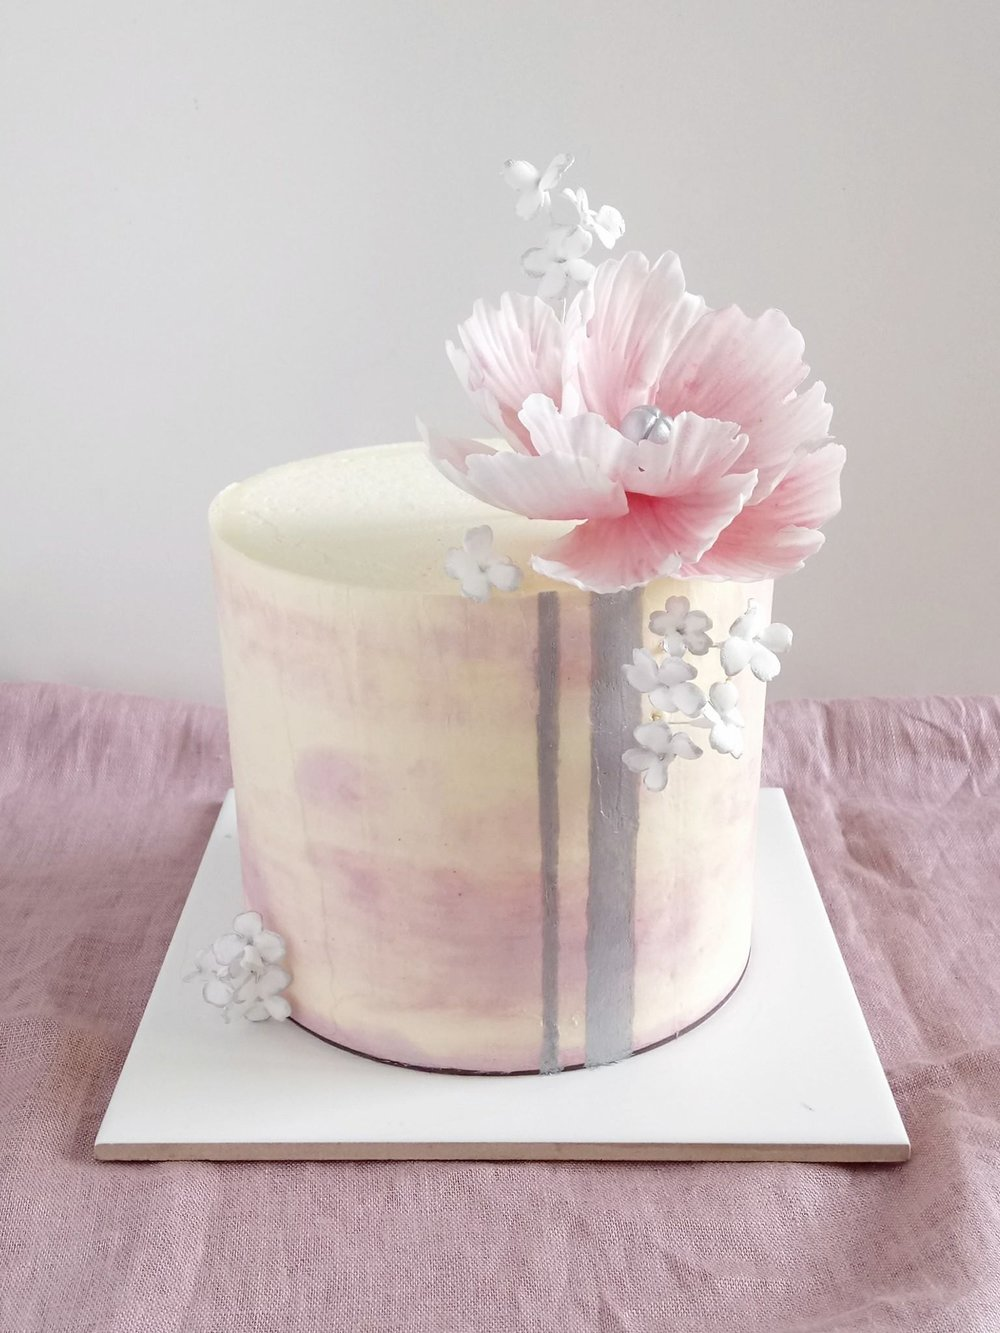 Rebecca Jane Sugar Art - Blush pink watercolour and silver buttercream cake with sugar flowers